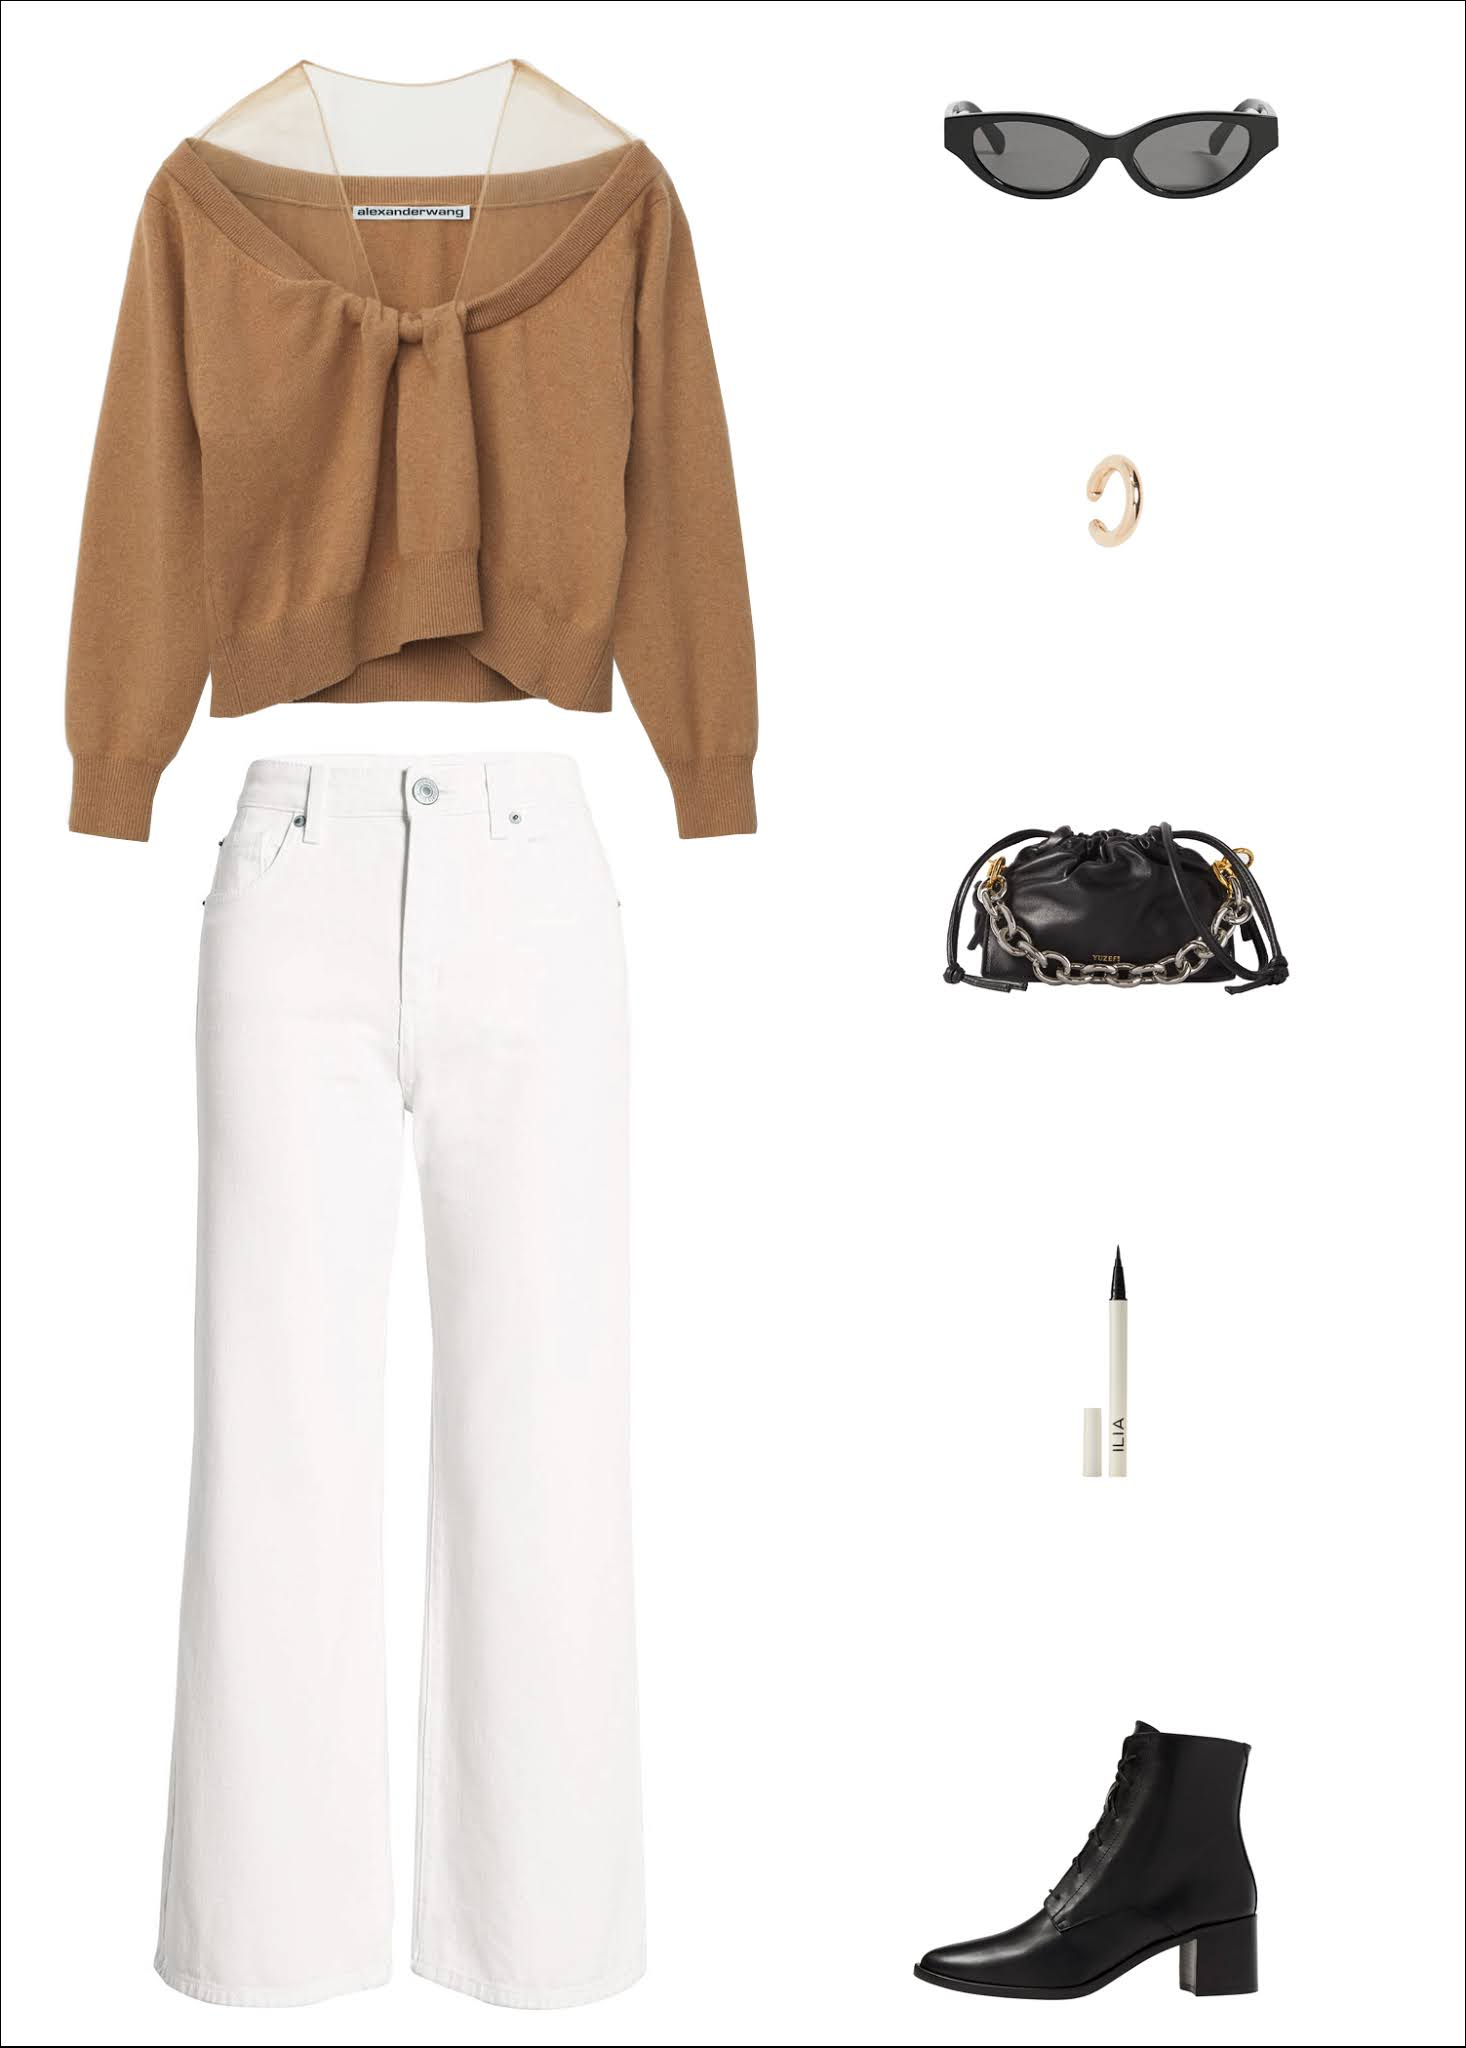 An Elevated Way to Wear White Jeans for Fall and Winter — Outfit Idea With a Tan Sheer Shoulder Sweater, Black Cat-Eye Sunglasses, Gold Ear Cuff, Mini Chain Bag, White Wide-Leg Denim, and Black Lace-Up Ankle Boots